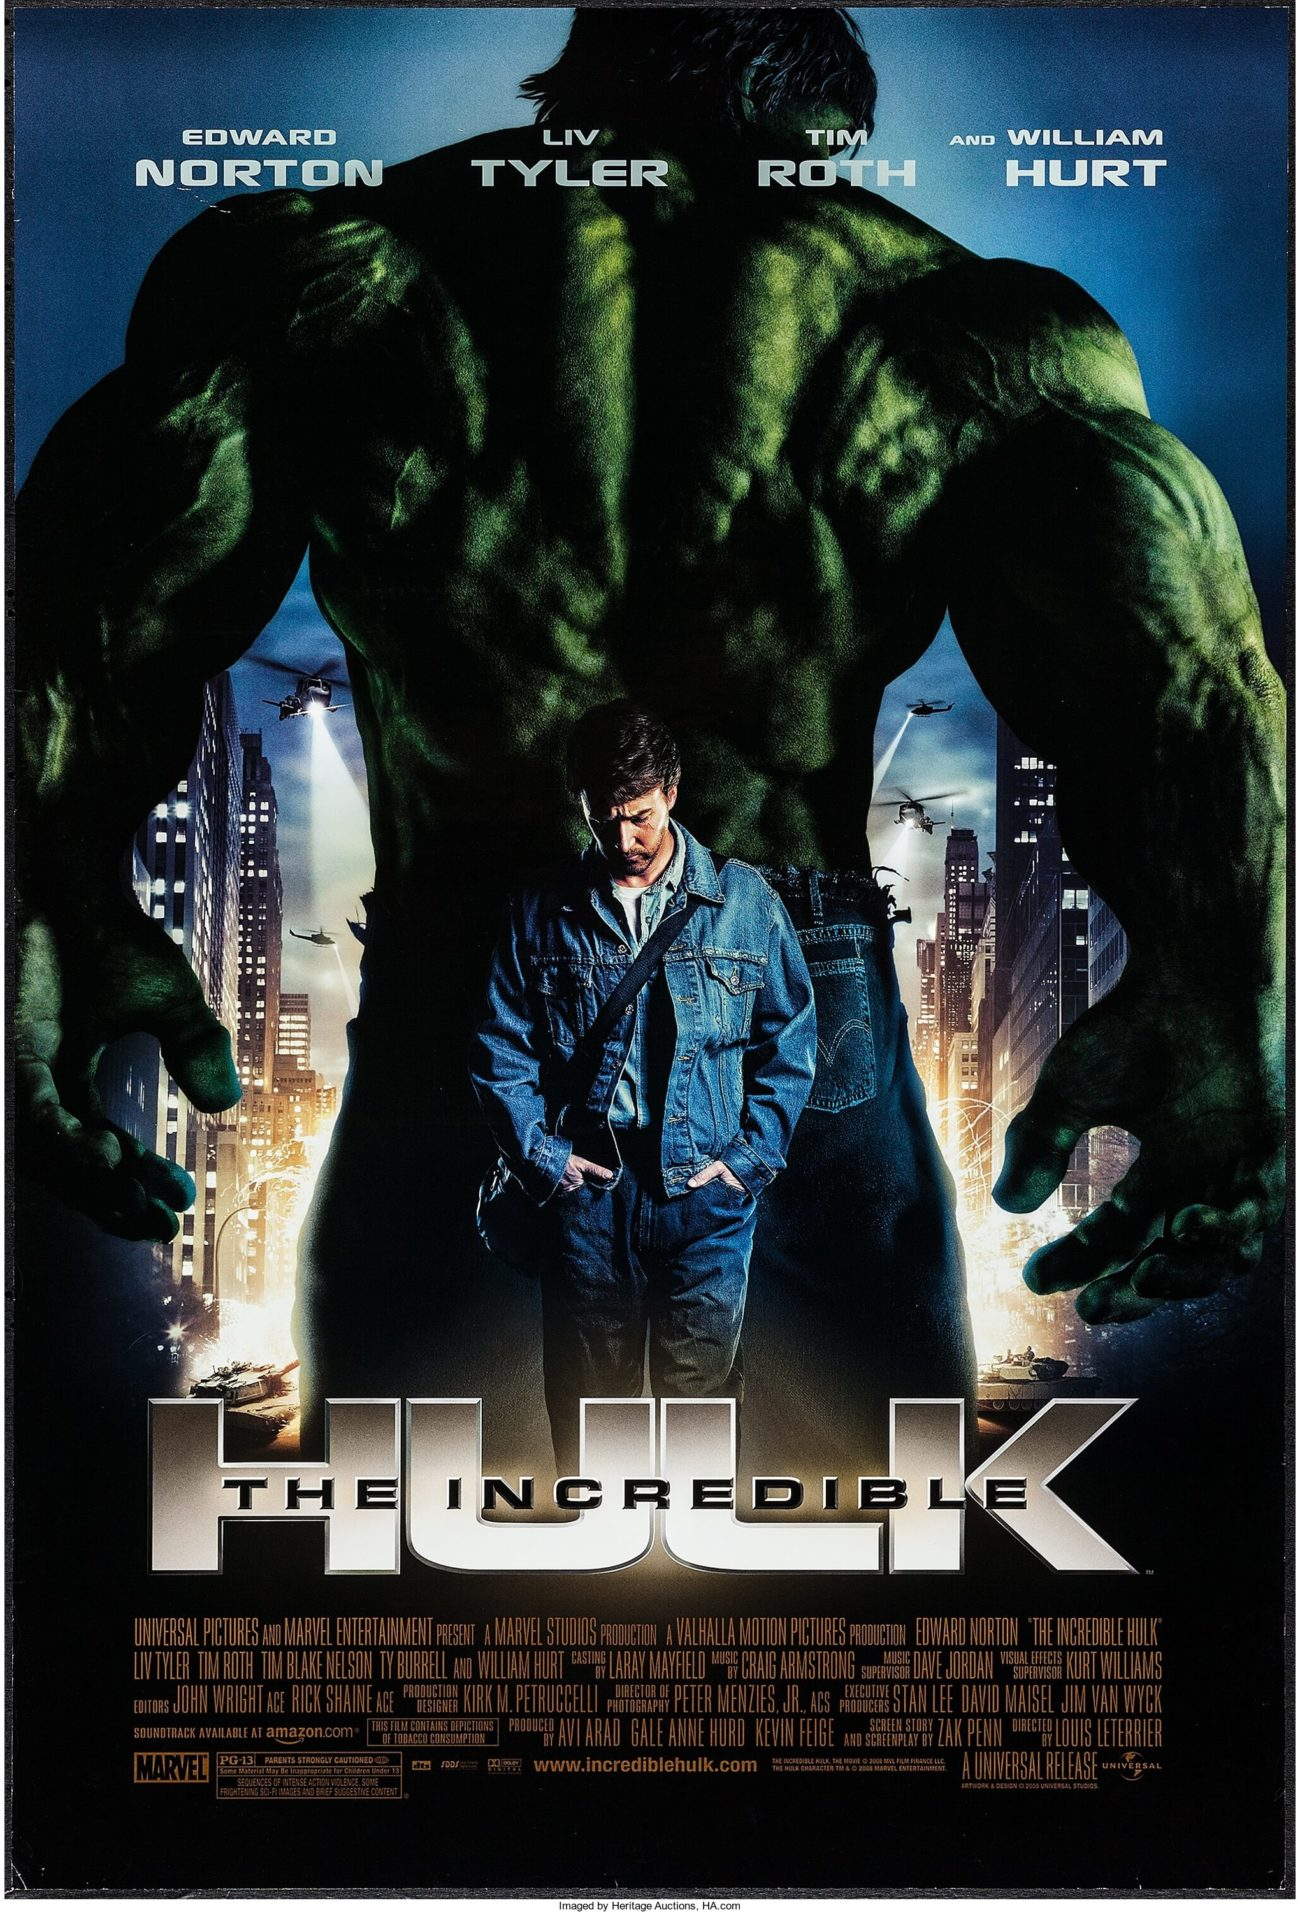 The Incredible Hulk (2008) movie poster - Dangerous Universe